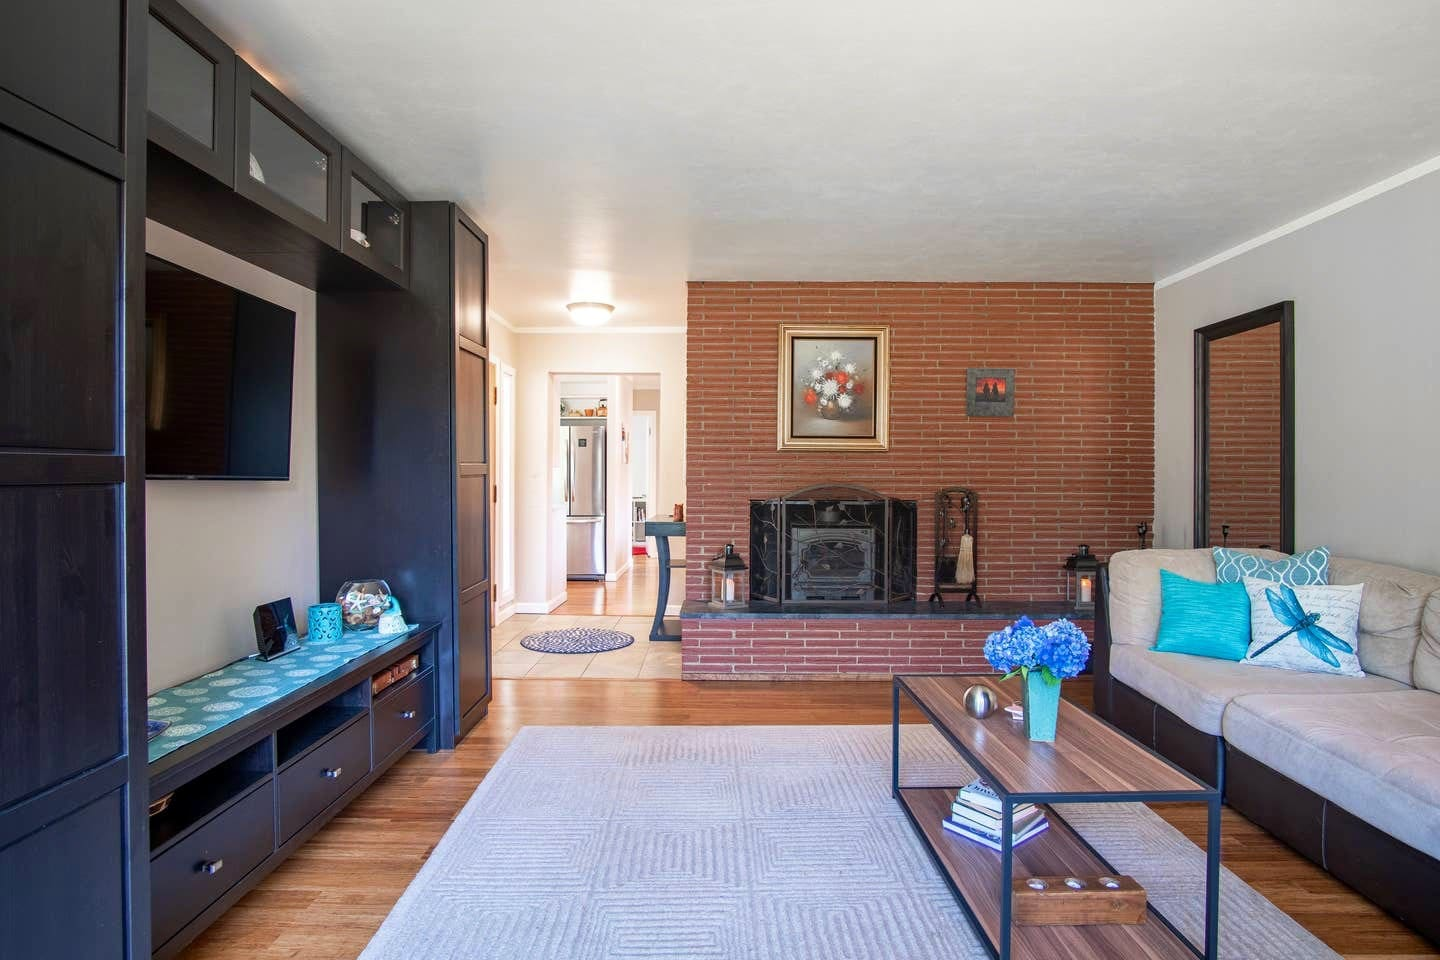 Living room area with relaxing indoor fireplace, full wall mirror, included WiFi, Smart TV, exercise equipment and fun games, cards and books included for entertainment.